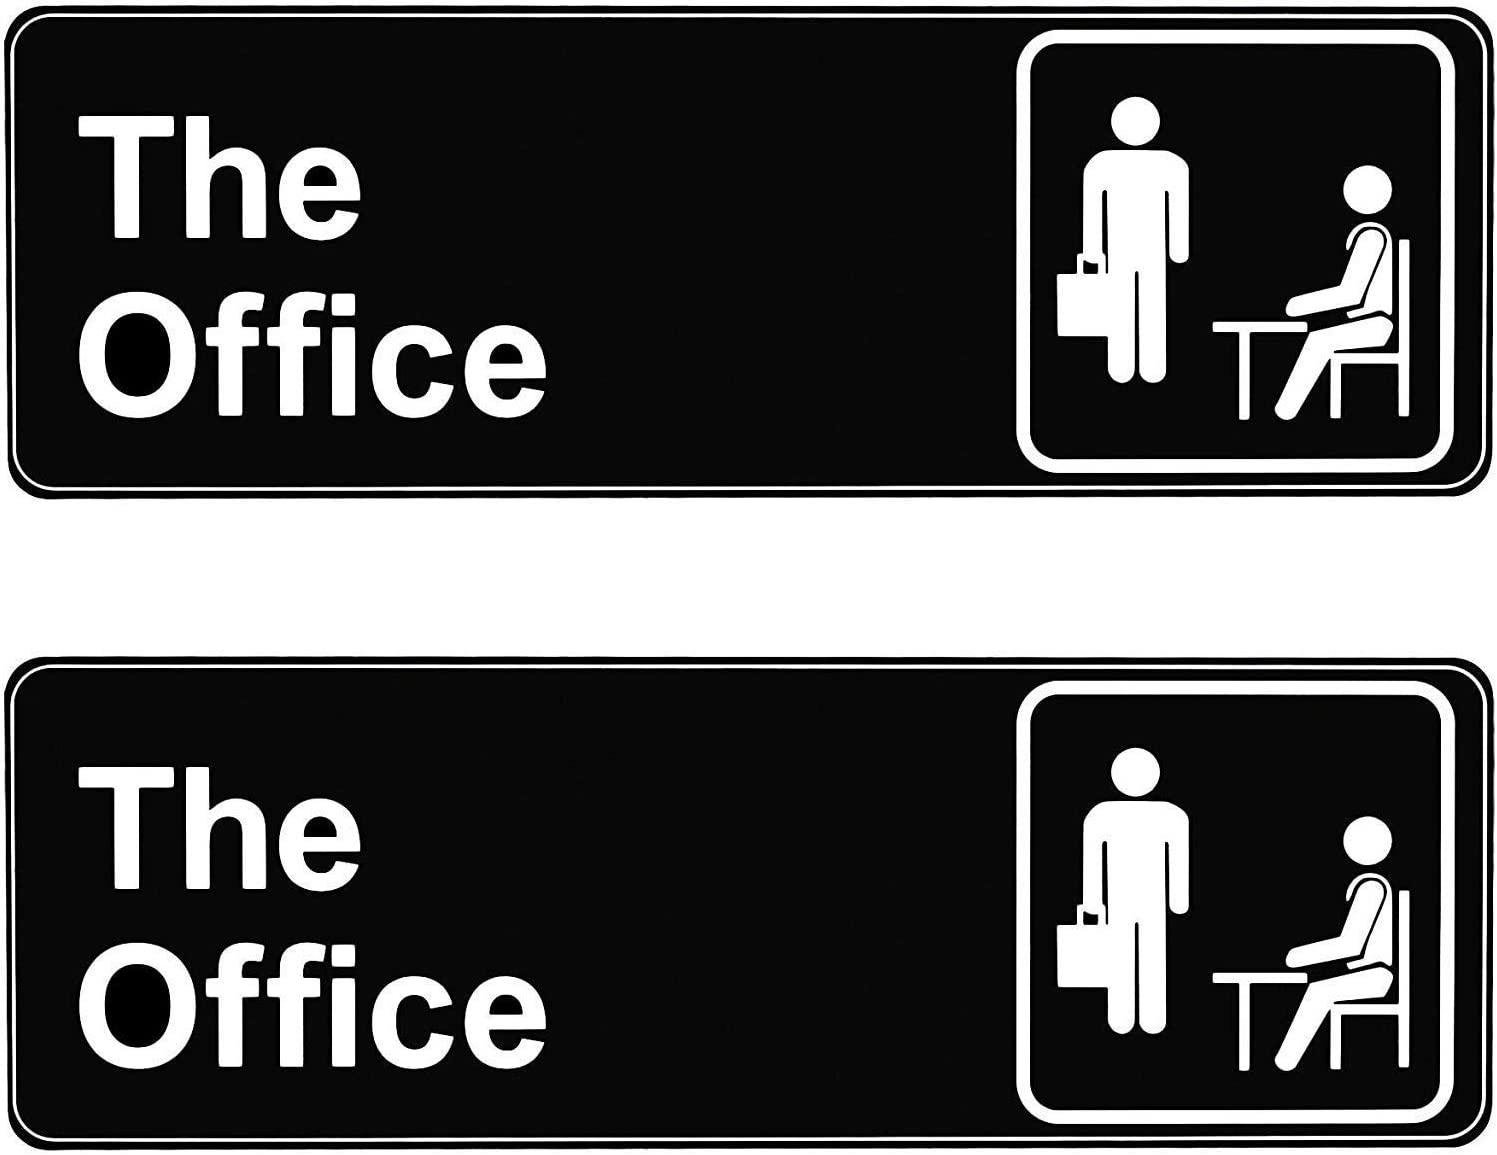 The Office Sign, Self Adhesive Logo Sign for Official Door Wall 9x3 Inch, Quick and Easy Installation Acrylic for Home Office Business, The Office Merchandise White Letters on Black Plate